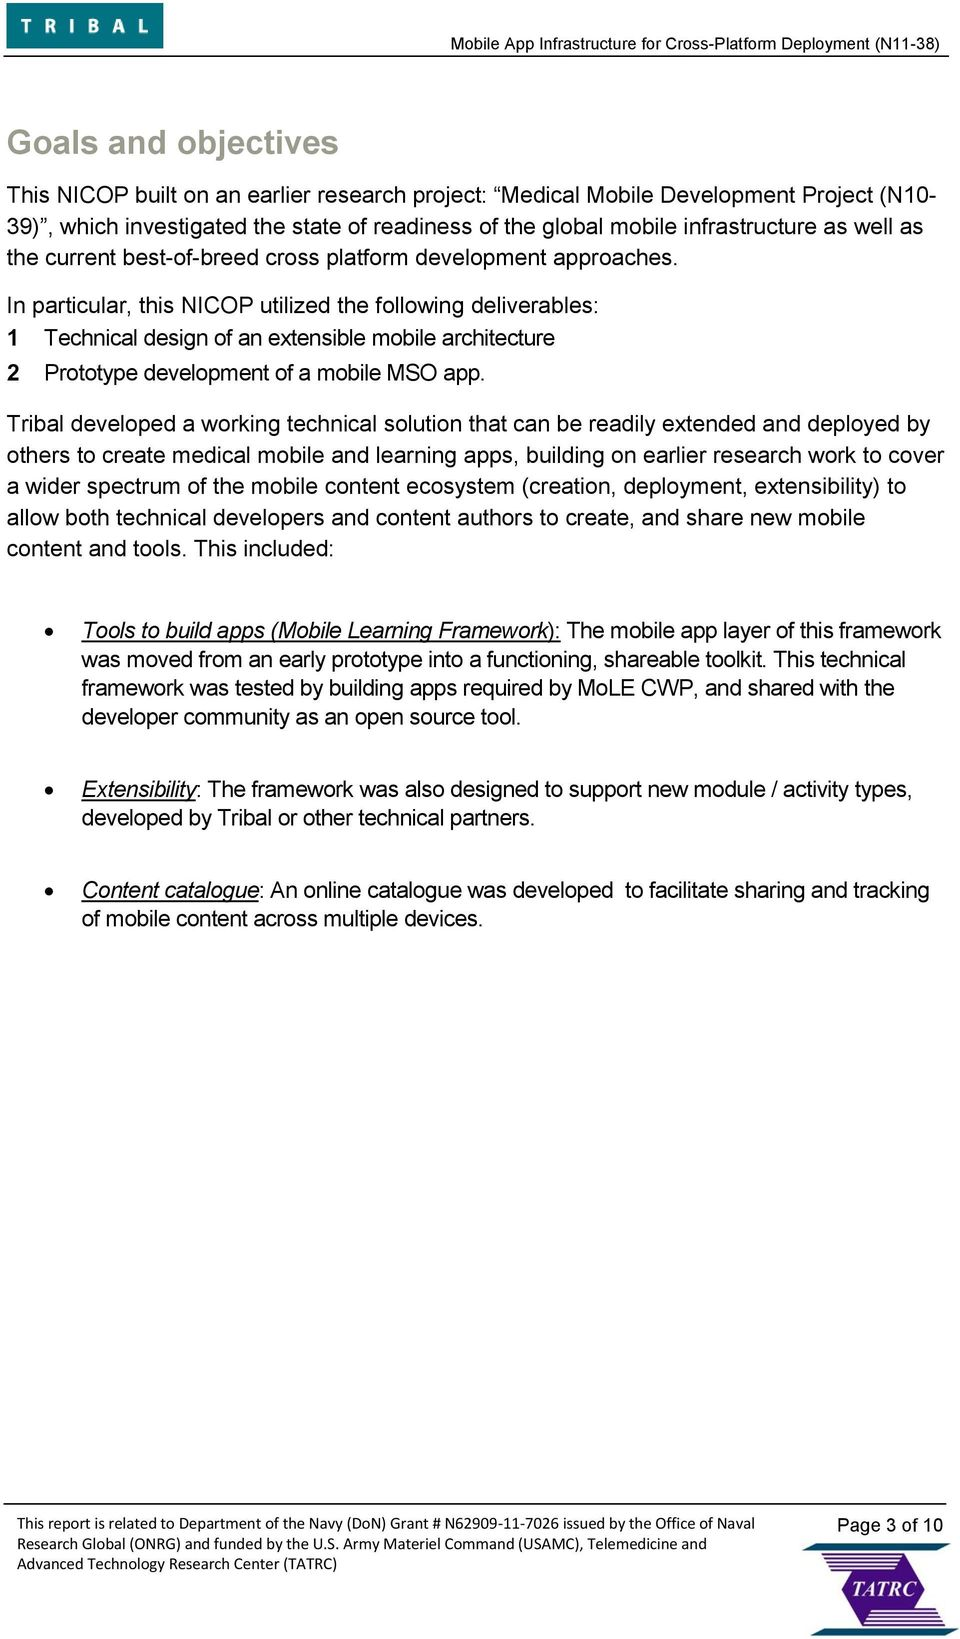 In particular, this NICOP utilized the following deliverables: 1 Technical design of an extensible mobile architecture 2 Prototype development of a mobile MSO app.